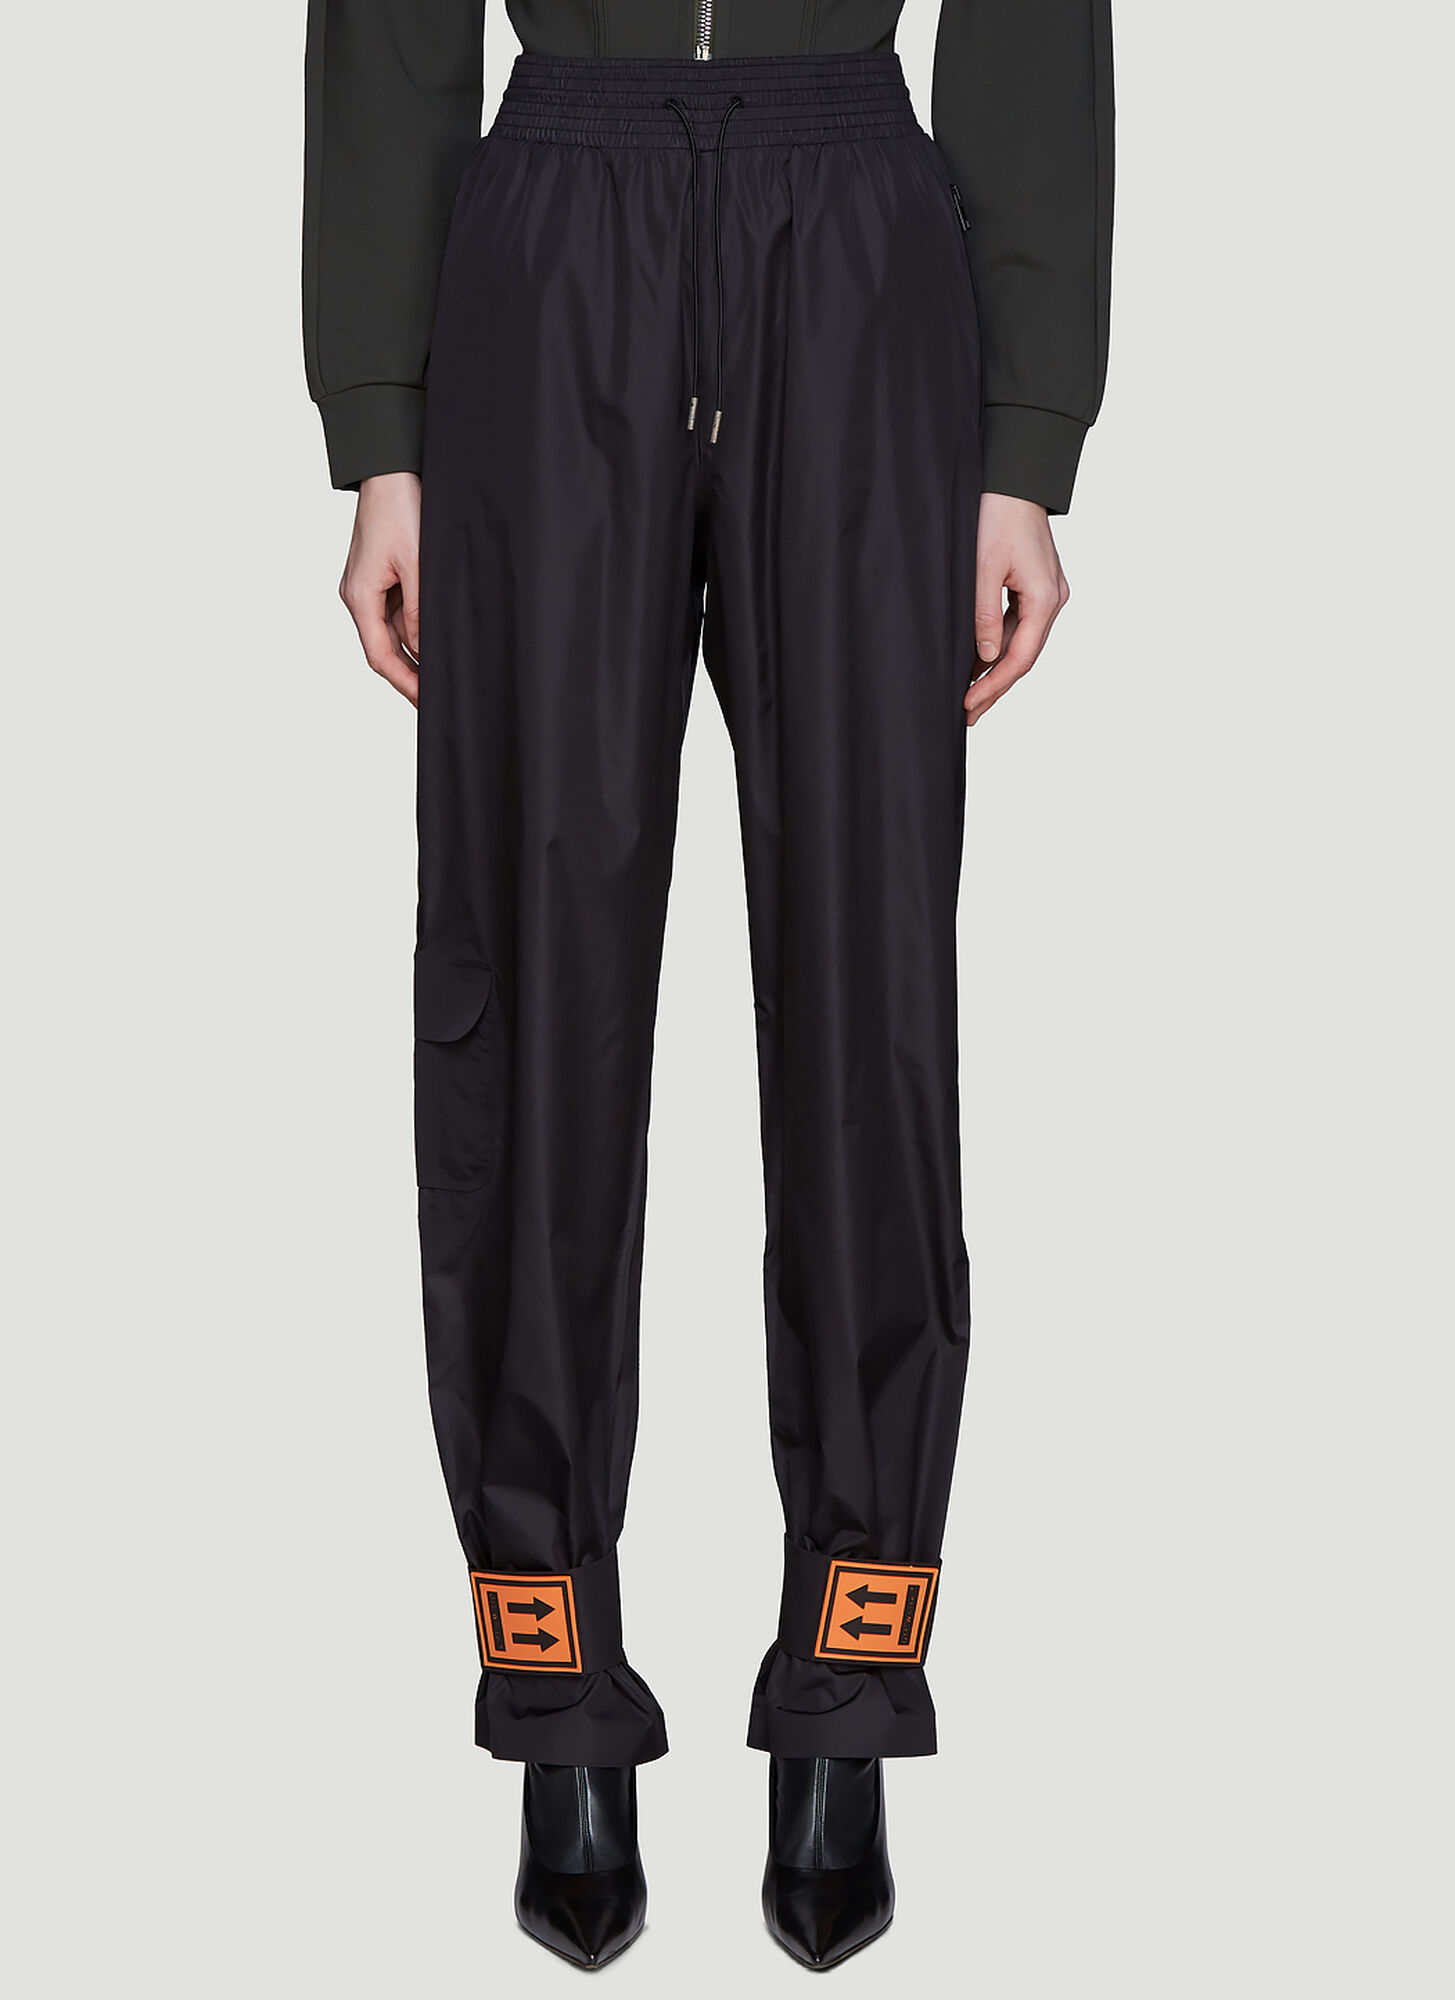 OFF-WHITE | Off-White Nylon Track Pants in Black size IT - 42 | Goxip